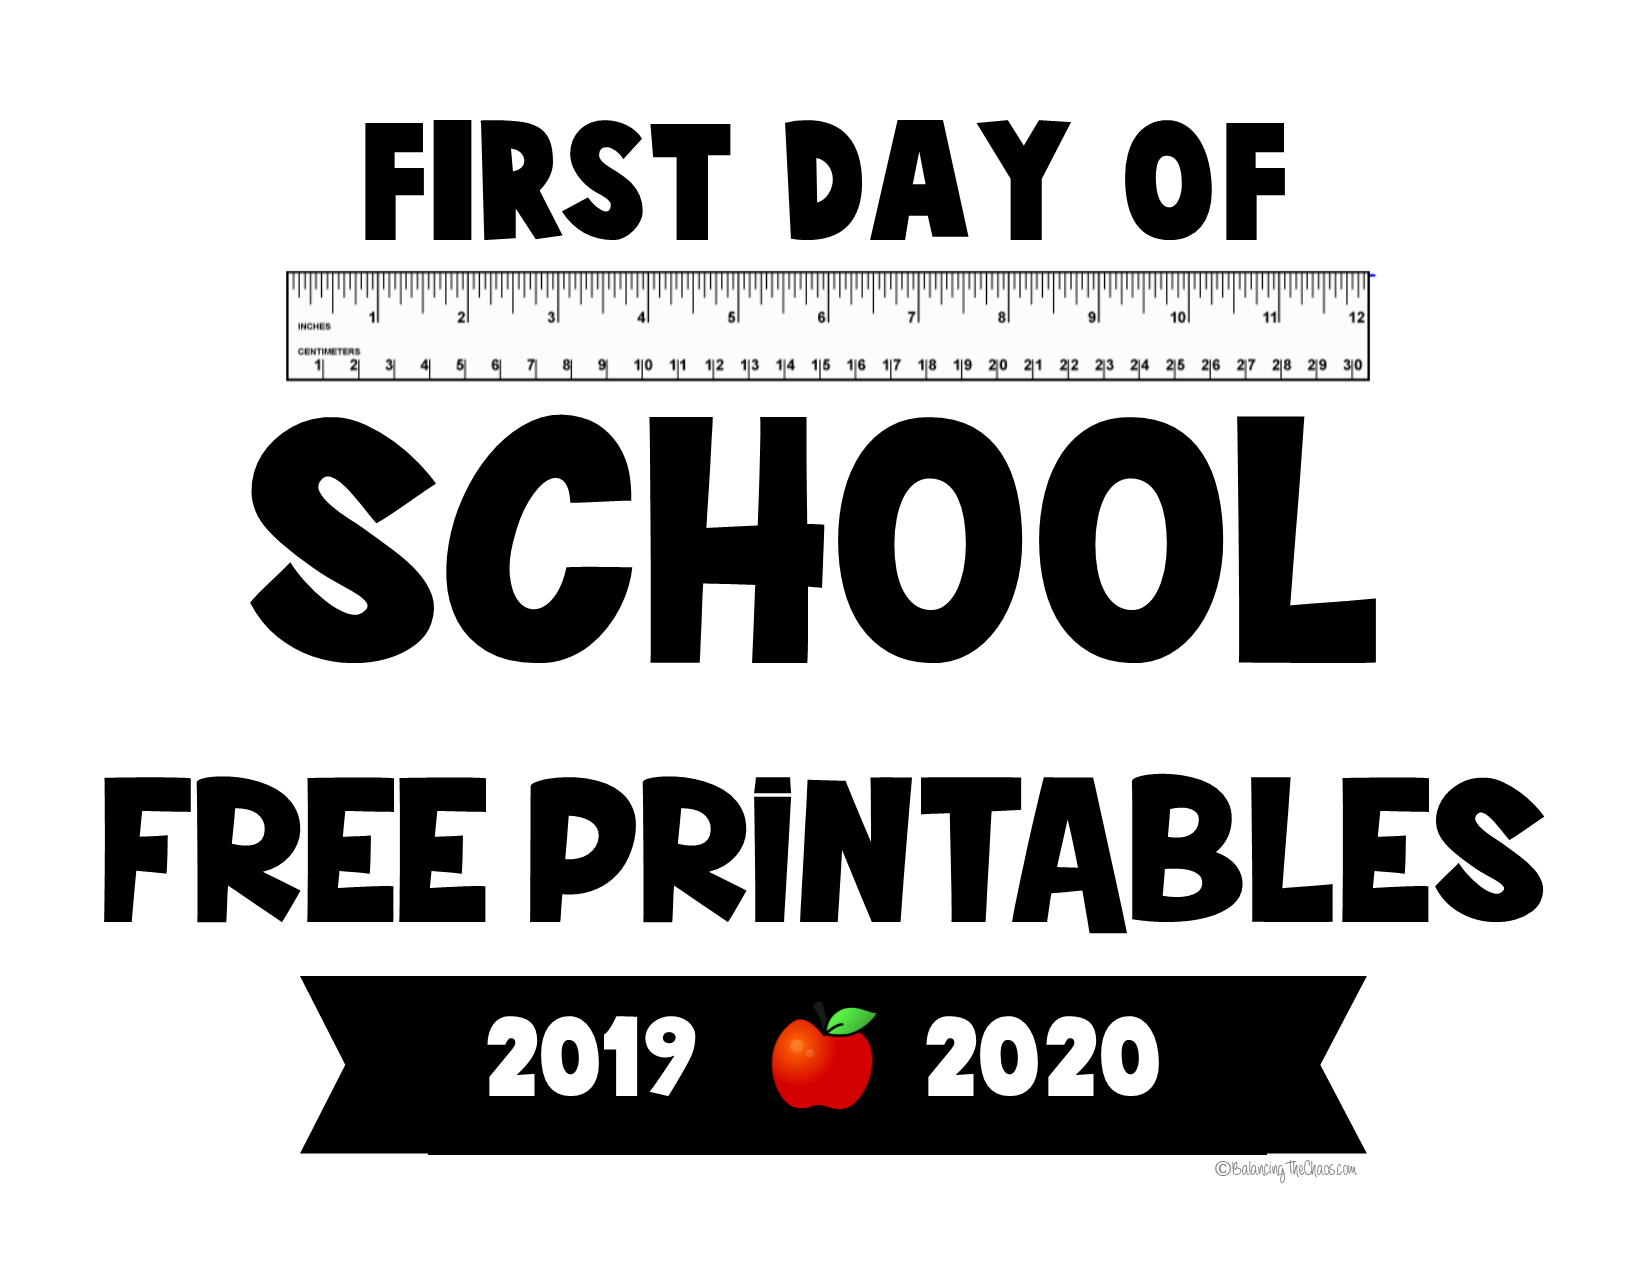 photograph regarding First Day of School Sign Printable known as Free of charge PRINTABLE: 2019 - 2020 To start with Working day of University Indications